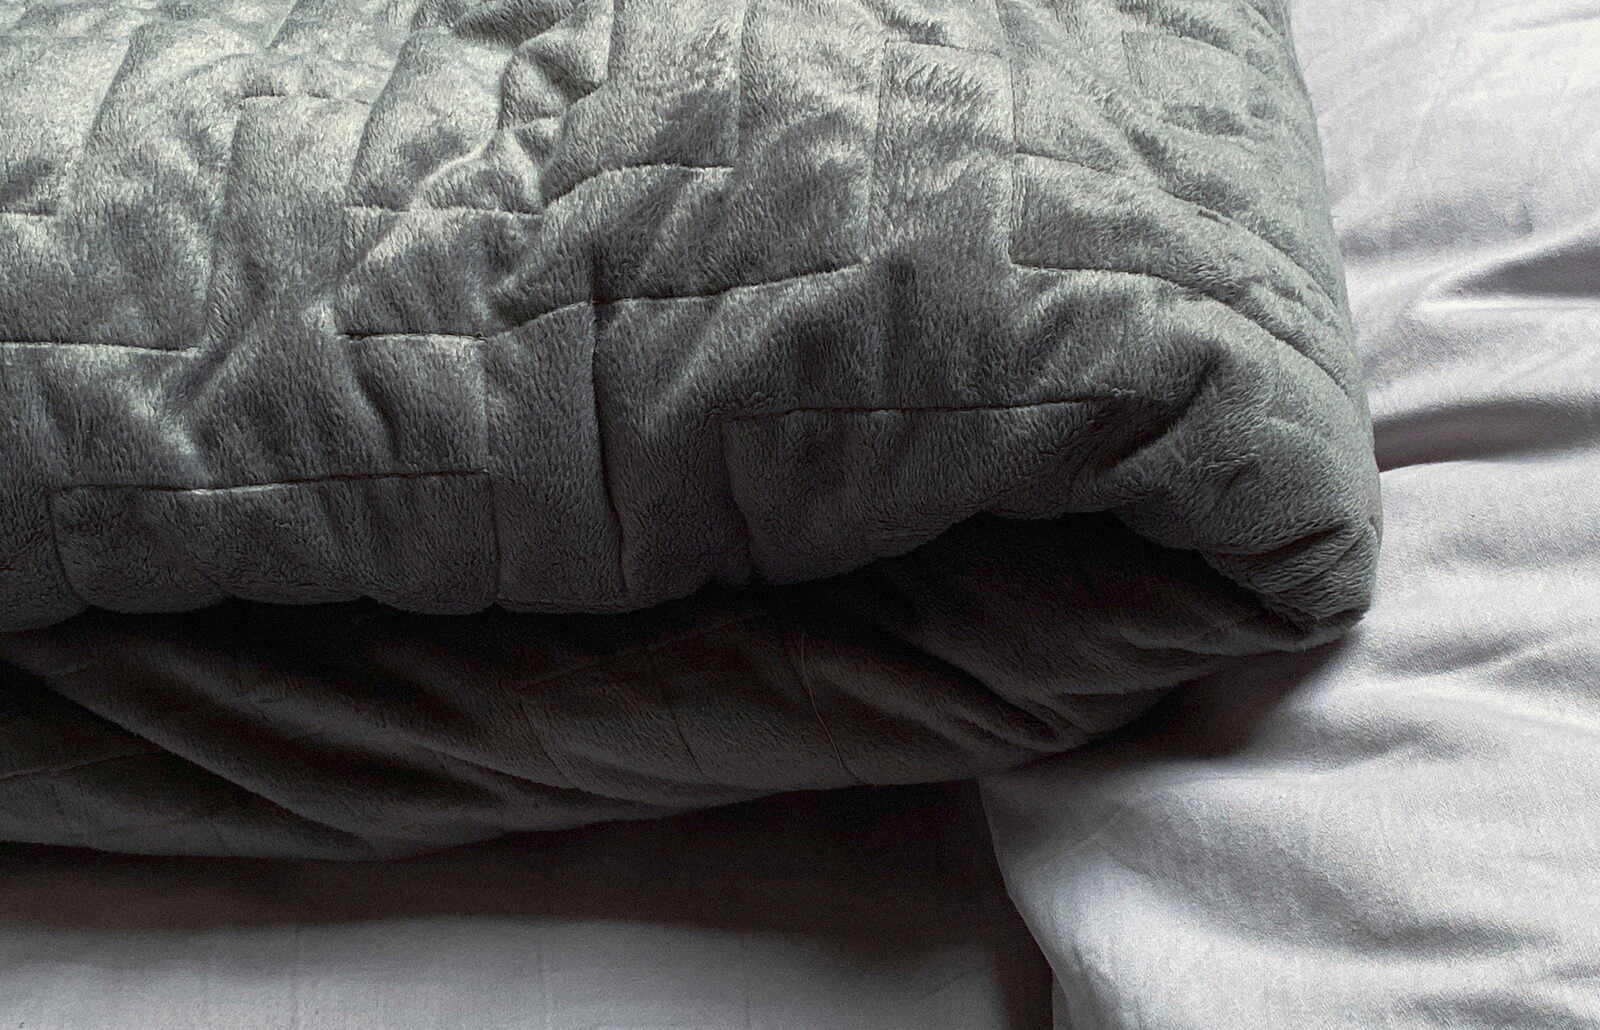 How To Wash A Weighted Blanket Stress Free Steps Lovetoknow